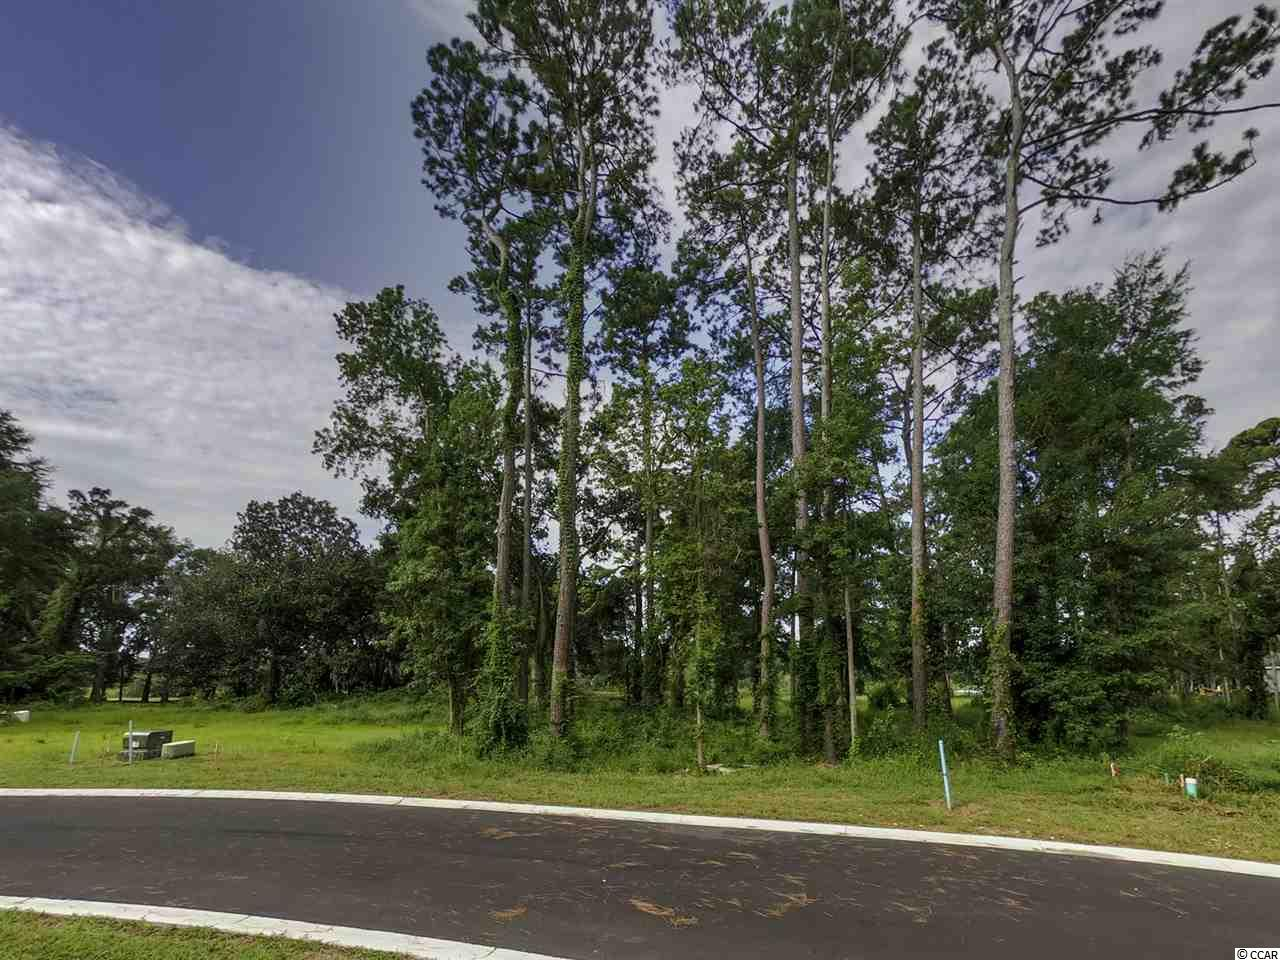 Here is your opportunity to build the home of your dreams in the well established gated golf course community of Pawleys Plantation. The course that Jack Nicklaus built. The ability to bring your own builder in with no time frame to start construction gives anyone looking to build their next home all the flexibility they will need. Also we do have a few approved homes plans that you may use. We have lots available on the 18th fairway, some with views of Pawleys Creek & Pawleys Island. The others back up to Masters Place Villas. Plenty of options from which to choose. Please feel free to call for more info and private showings of all the lots we have. Twenty two as of today. Pawleys Plantation is only minutes to fine dining and shopping. Pawleys Island Beaches are also just a few minutes away. Pawleys Plantation has 24-hour security, not that you need it. Residents can join the country club, which offers access to a Jack Nicklaus Signature golf course, pool, tennis, fitness facility and dining. Ask us for more info on the social or full memberships that are available. If you have a boat the Hagley Landing is just minutes away or you can check out availability at one of the local marinas. Historic Georgetown is just a quick 15 minute ride to enjoy that area. Charleston is about an hour and a half away. To fly out or in, Myrtle Beach is 45 minutes north & Charleston airport about an hour south. There are also eight other great golf courses close by here in Pawleys Island. Your family deserves this opportunity to own a small piece of heaven. Relax we'll take it from here.®